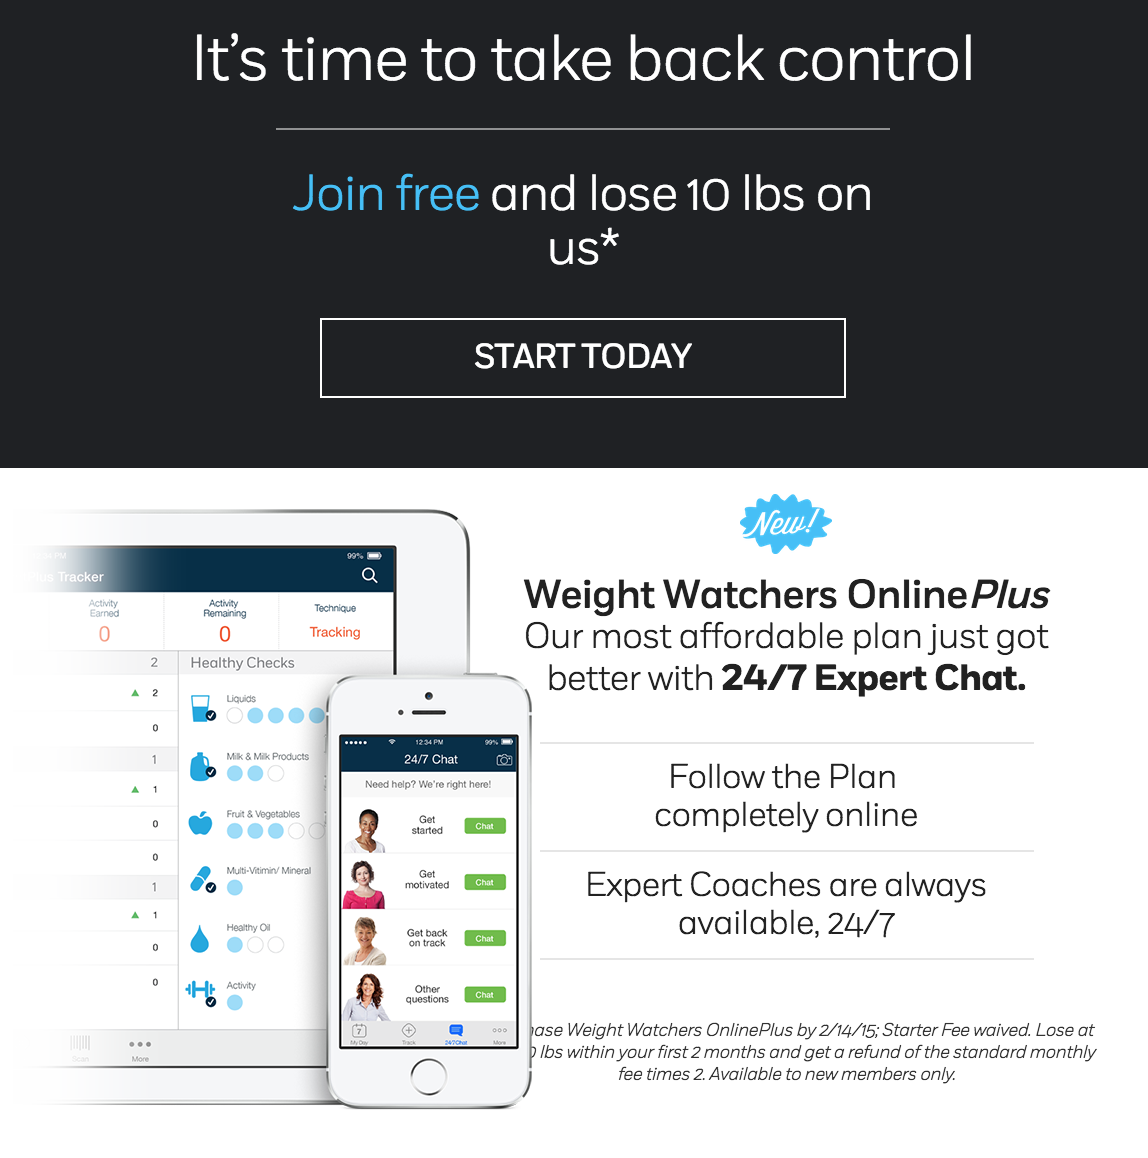 I'm excited to see @WeightWatchers offering something like this to help! http://t.co/5quHpf5YbY #WWsponsored #SB49 http://t.co/Kw6dDmeEY8